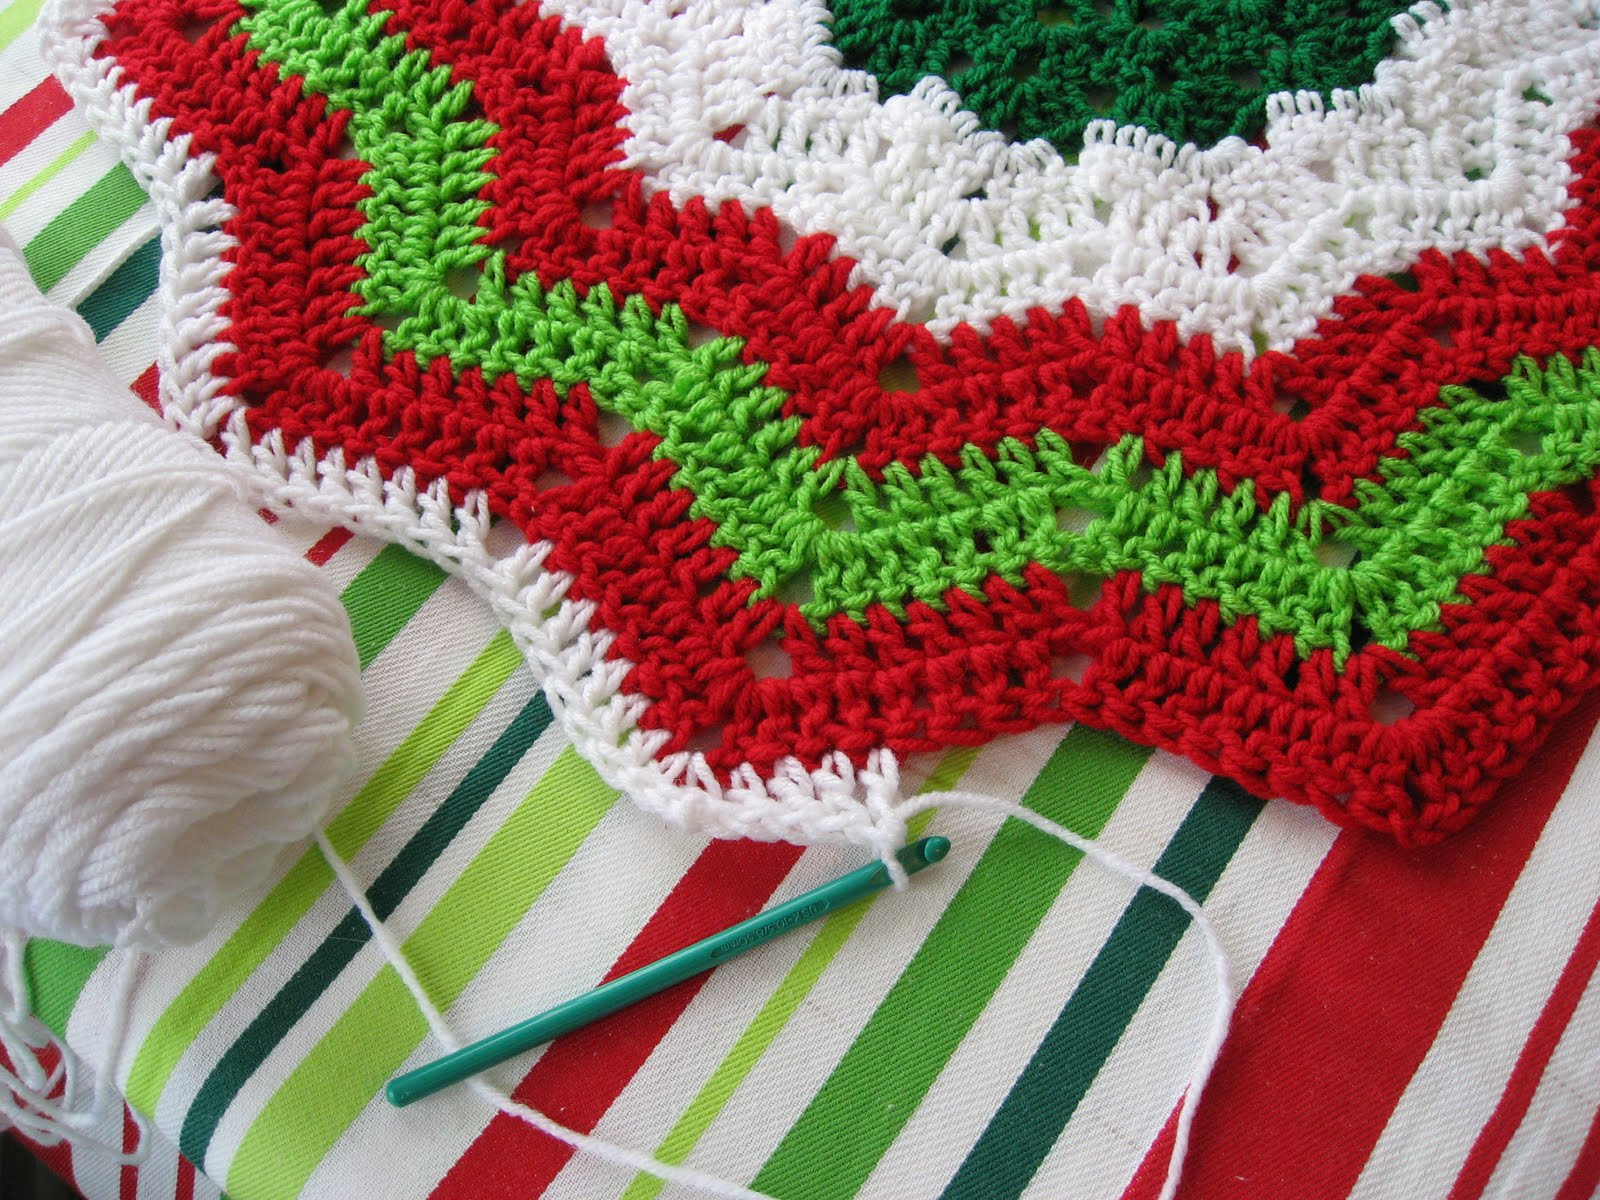 Christmas Tree Skirt Knitting Pattern : Free Crochet Christmas Tree Pattern   Crochet Club